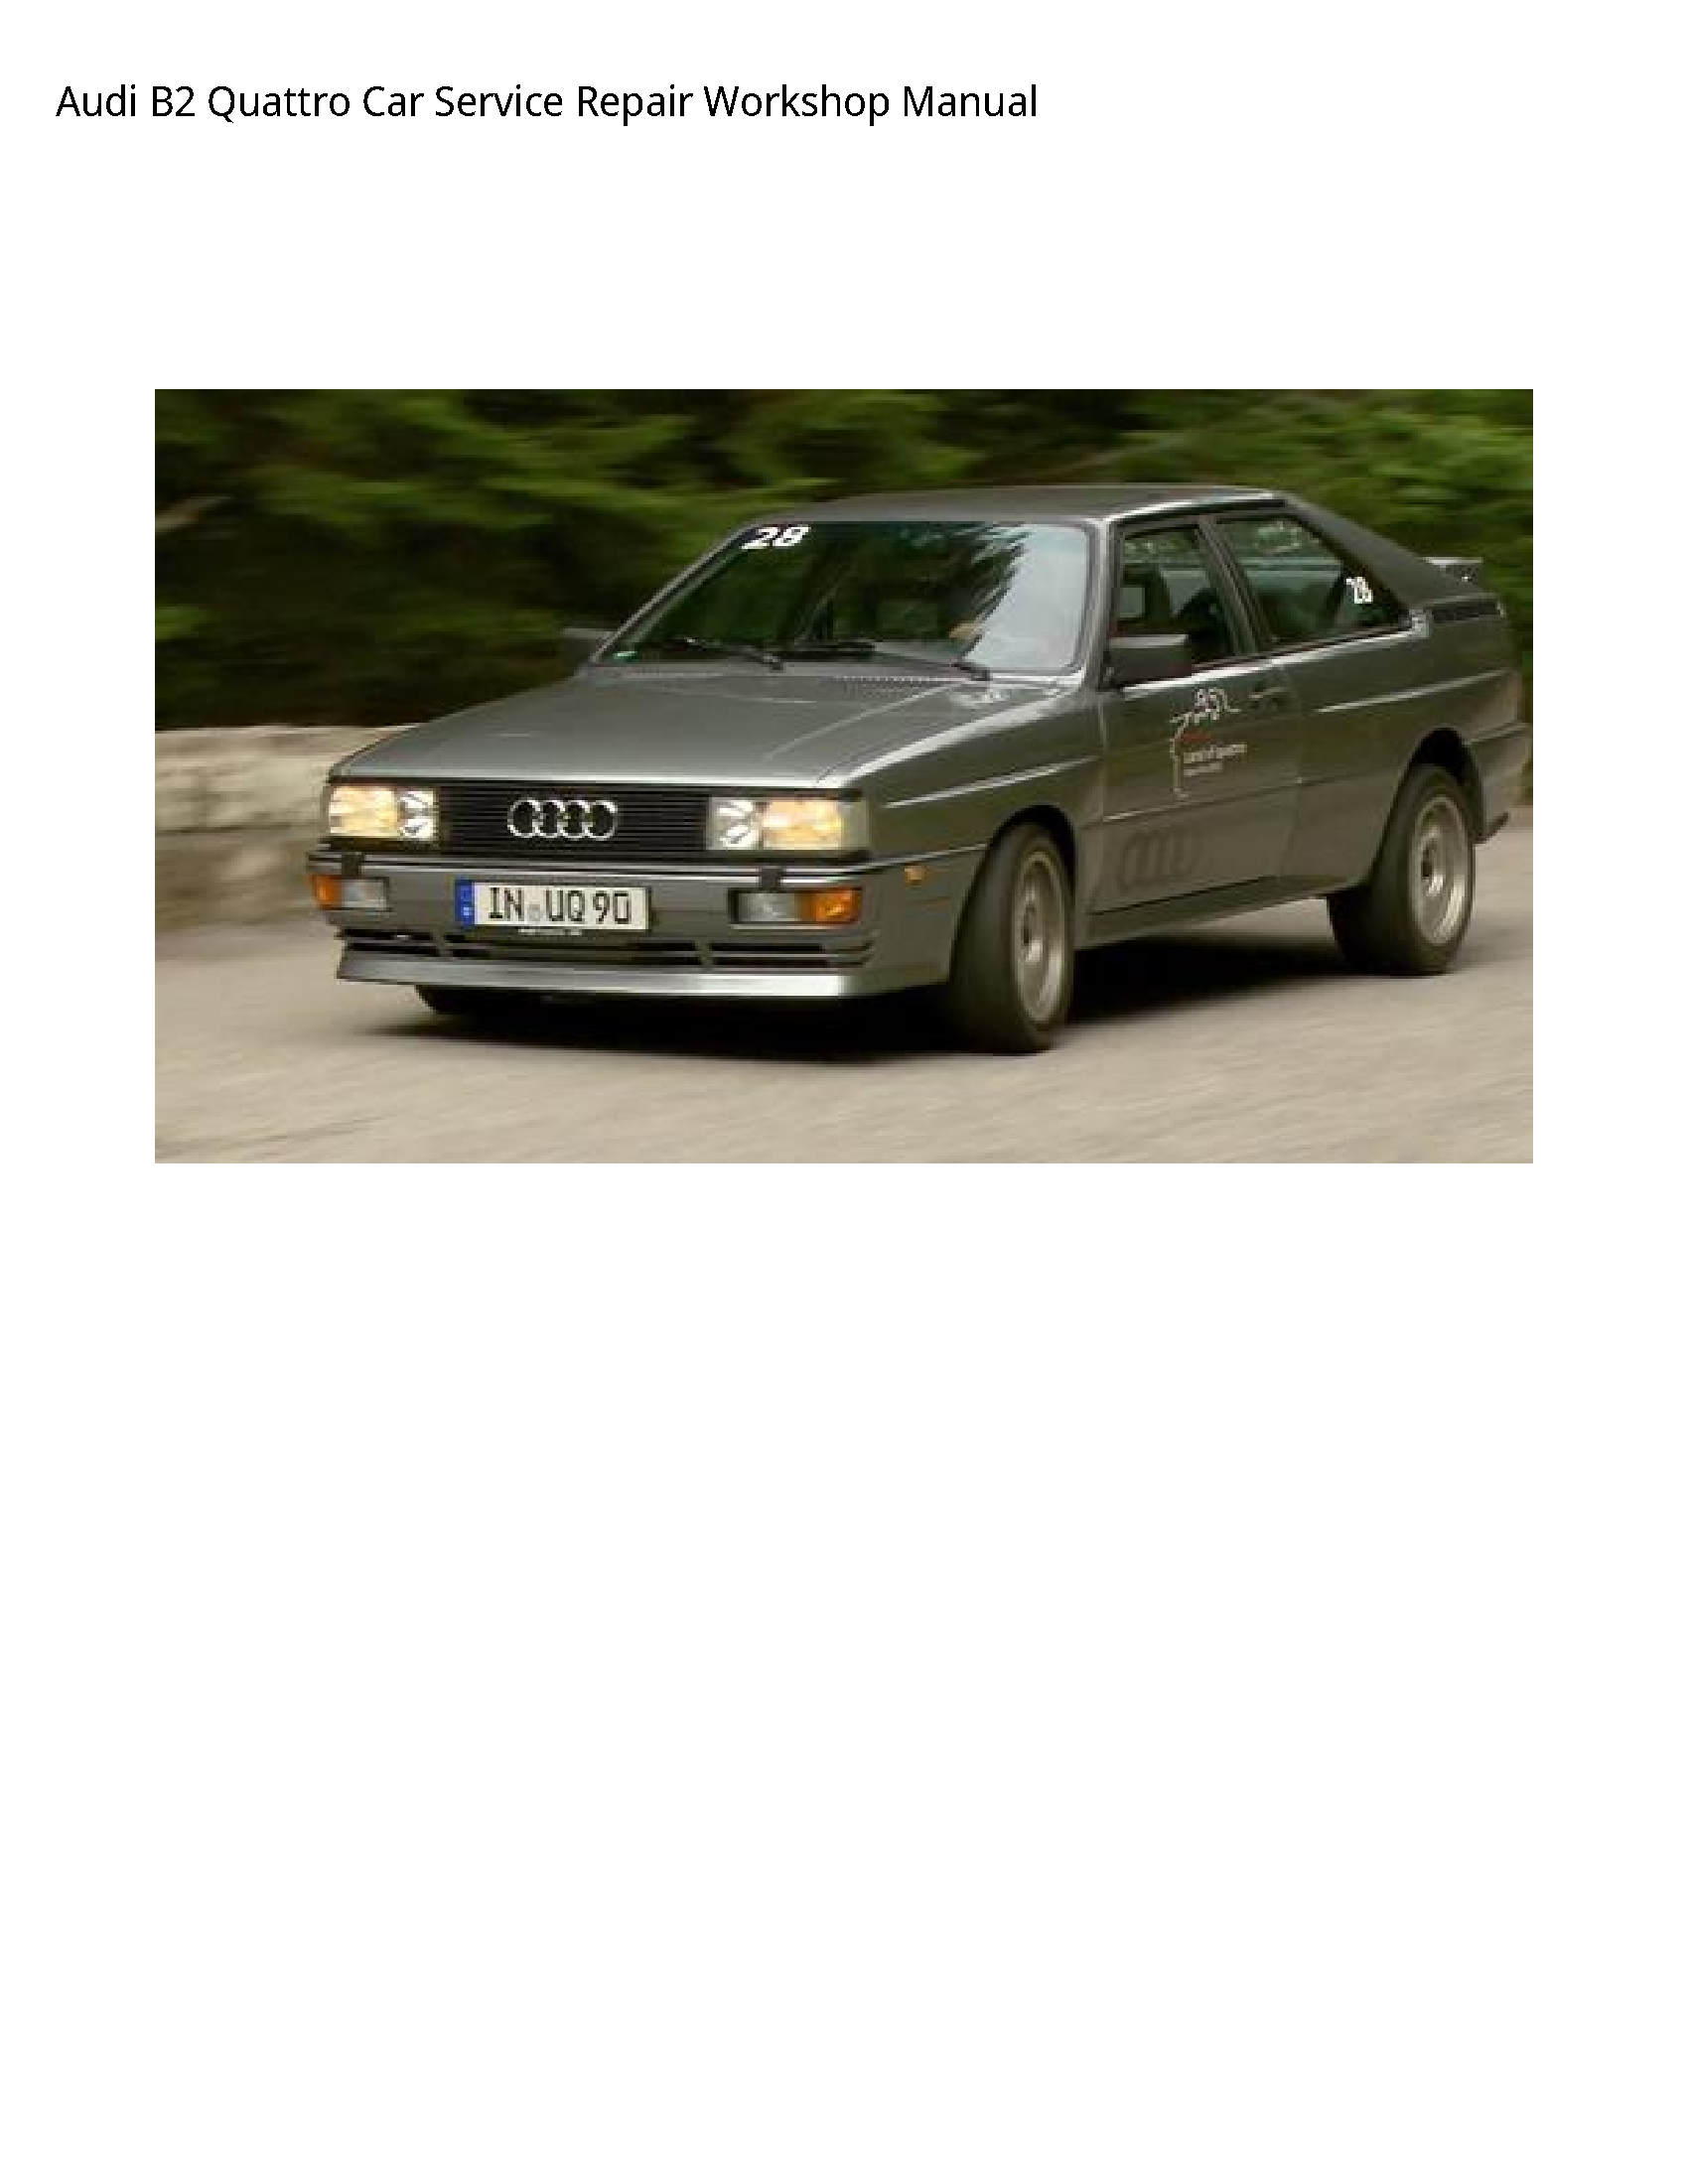 Audi B2 Quattro Car manual